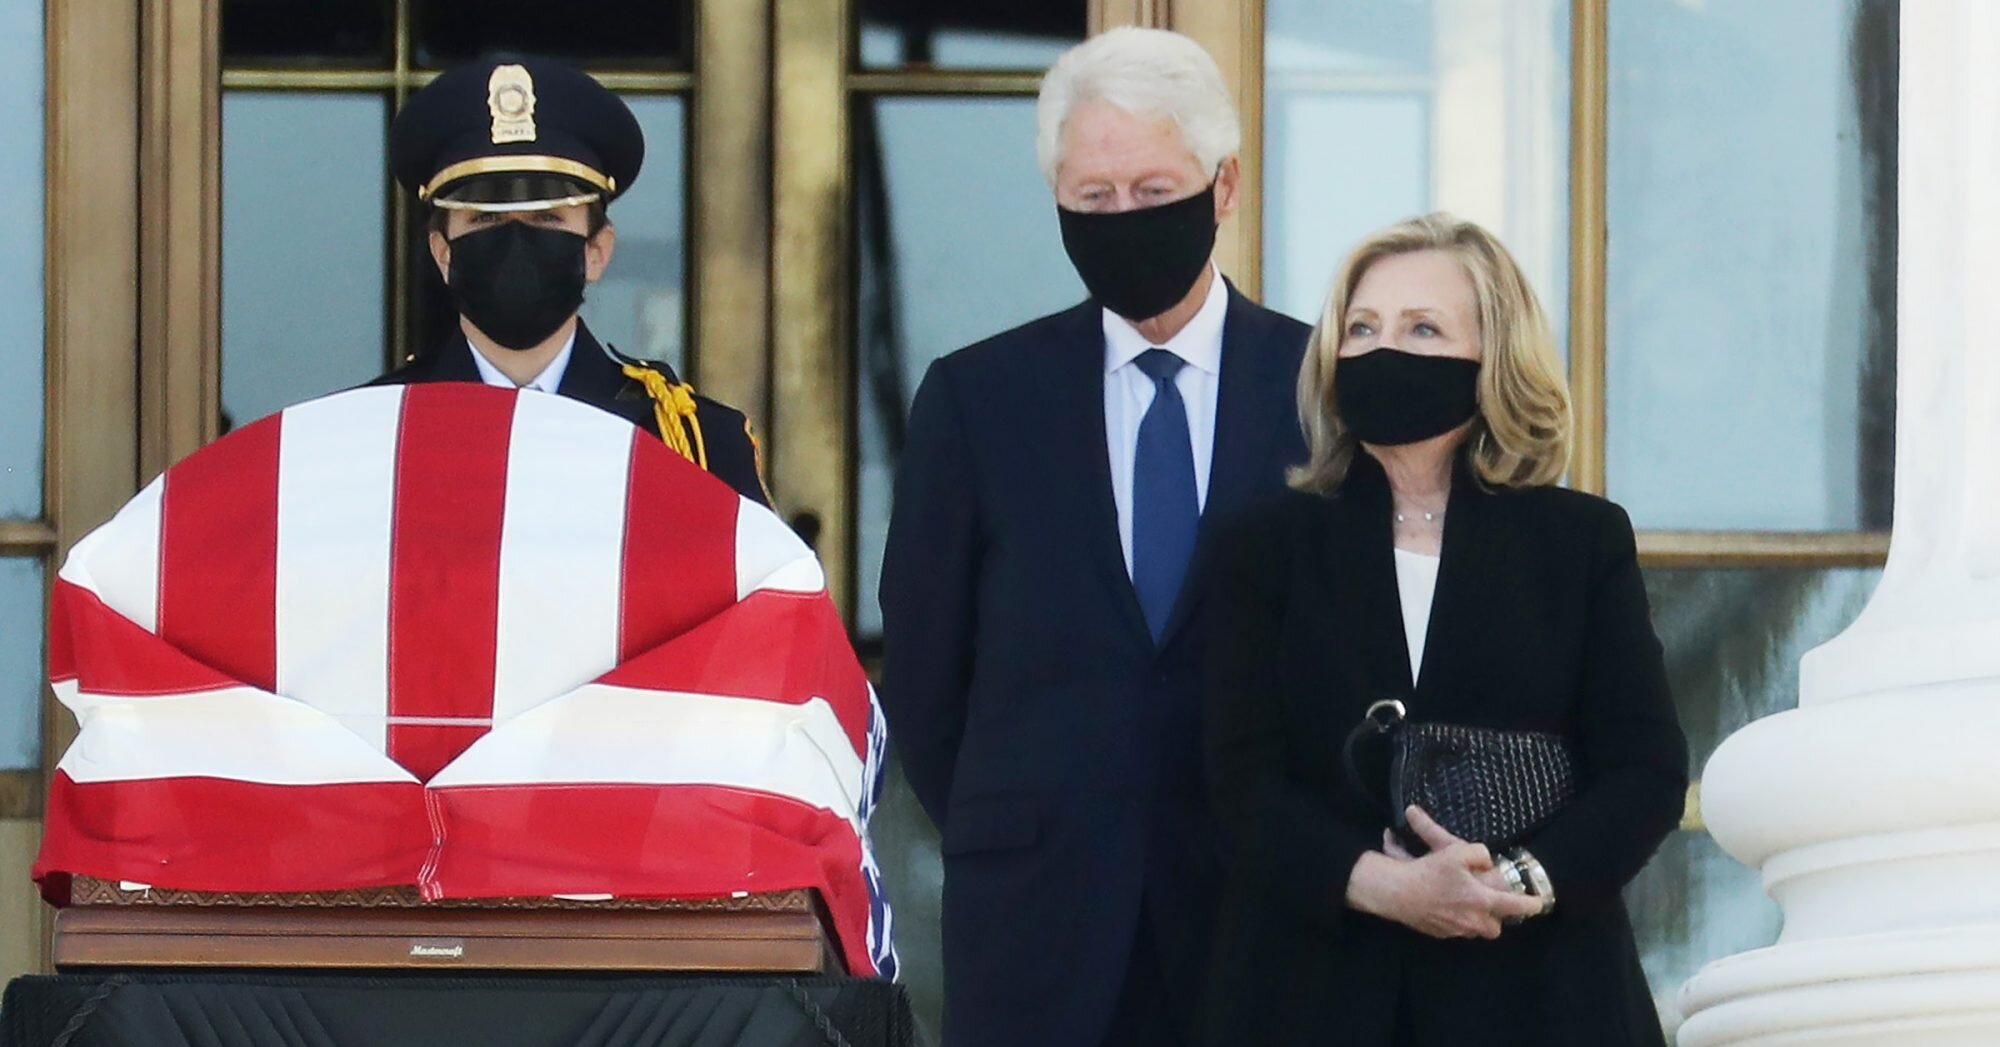 Bill & Hillary Clinton Join Mourners Honoring 'Trailblazer' Ruth Bader Ginsburg at Supreme Court